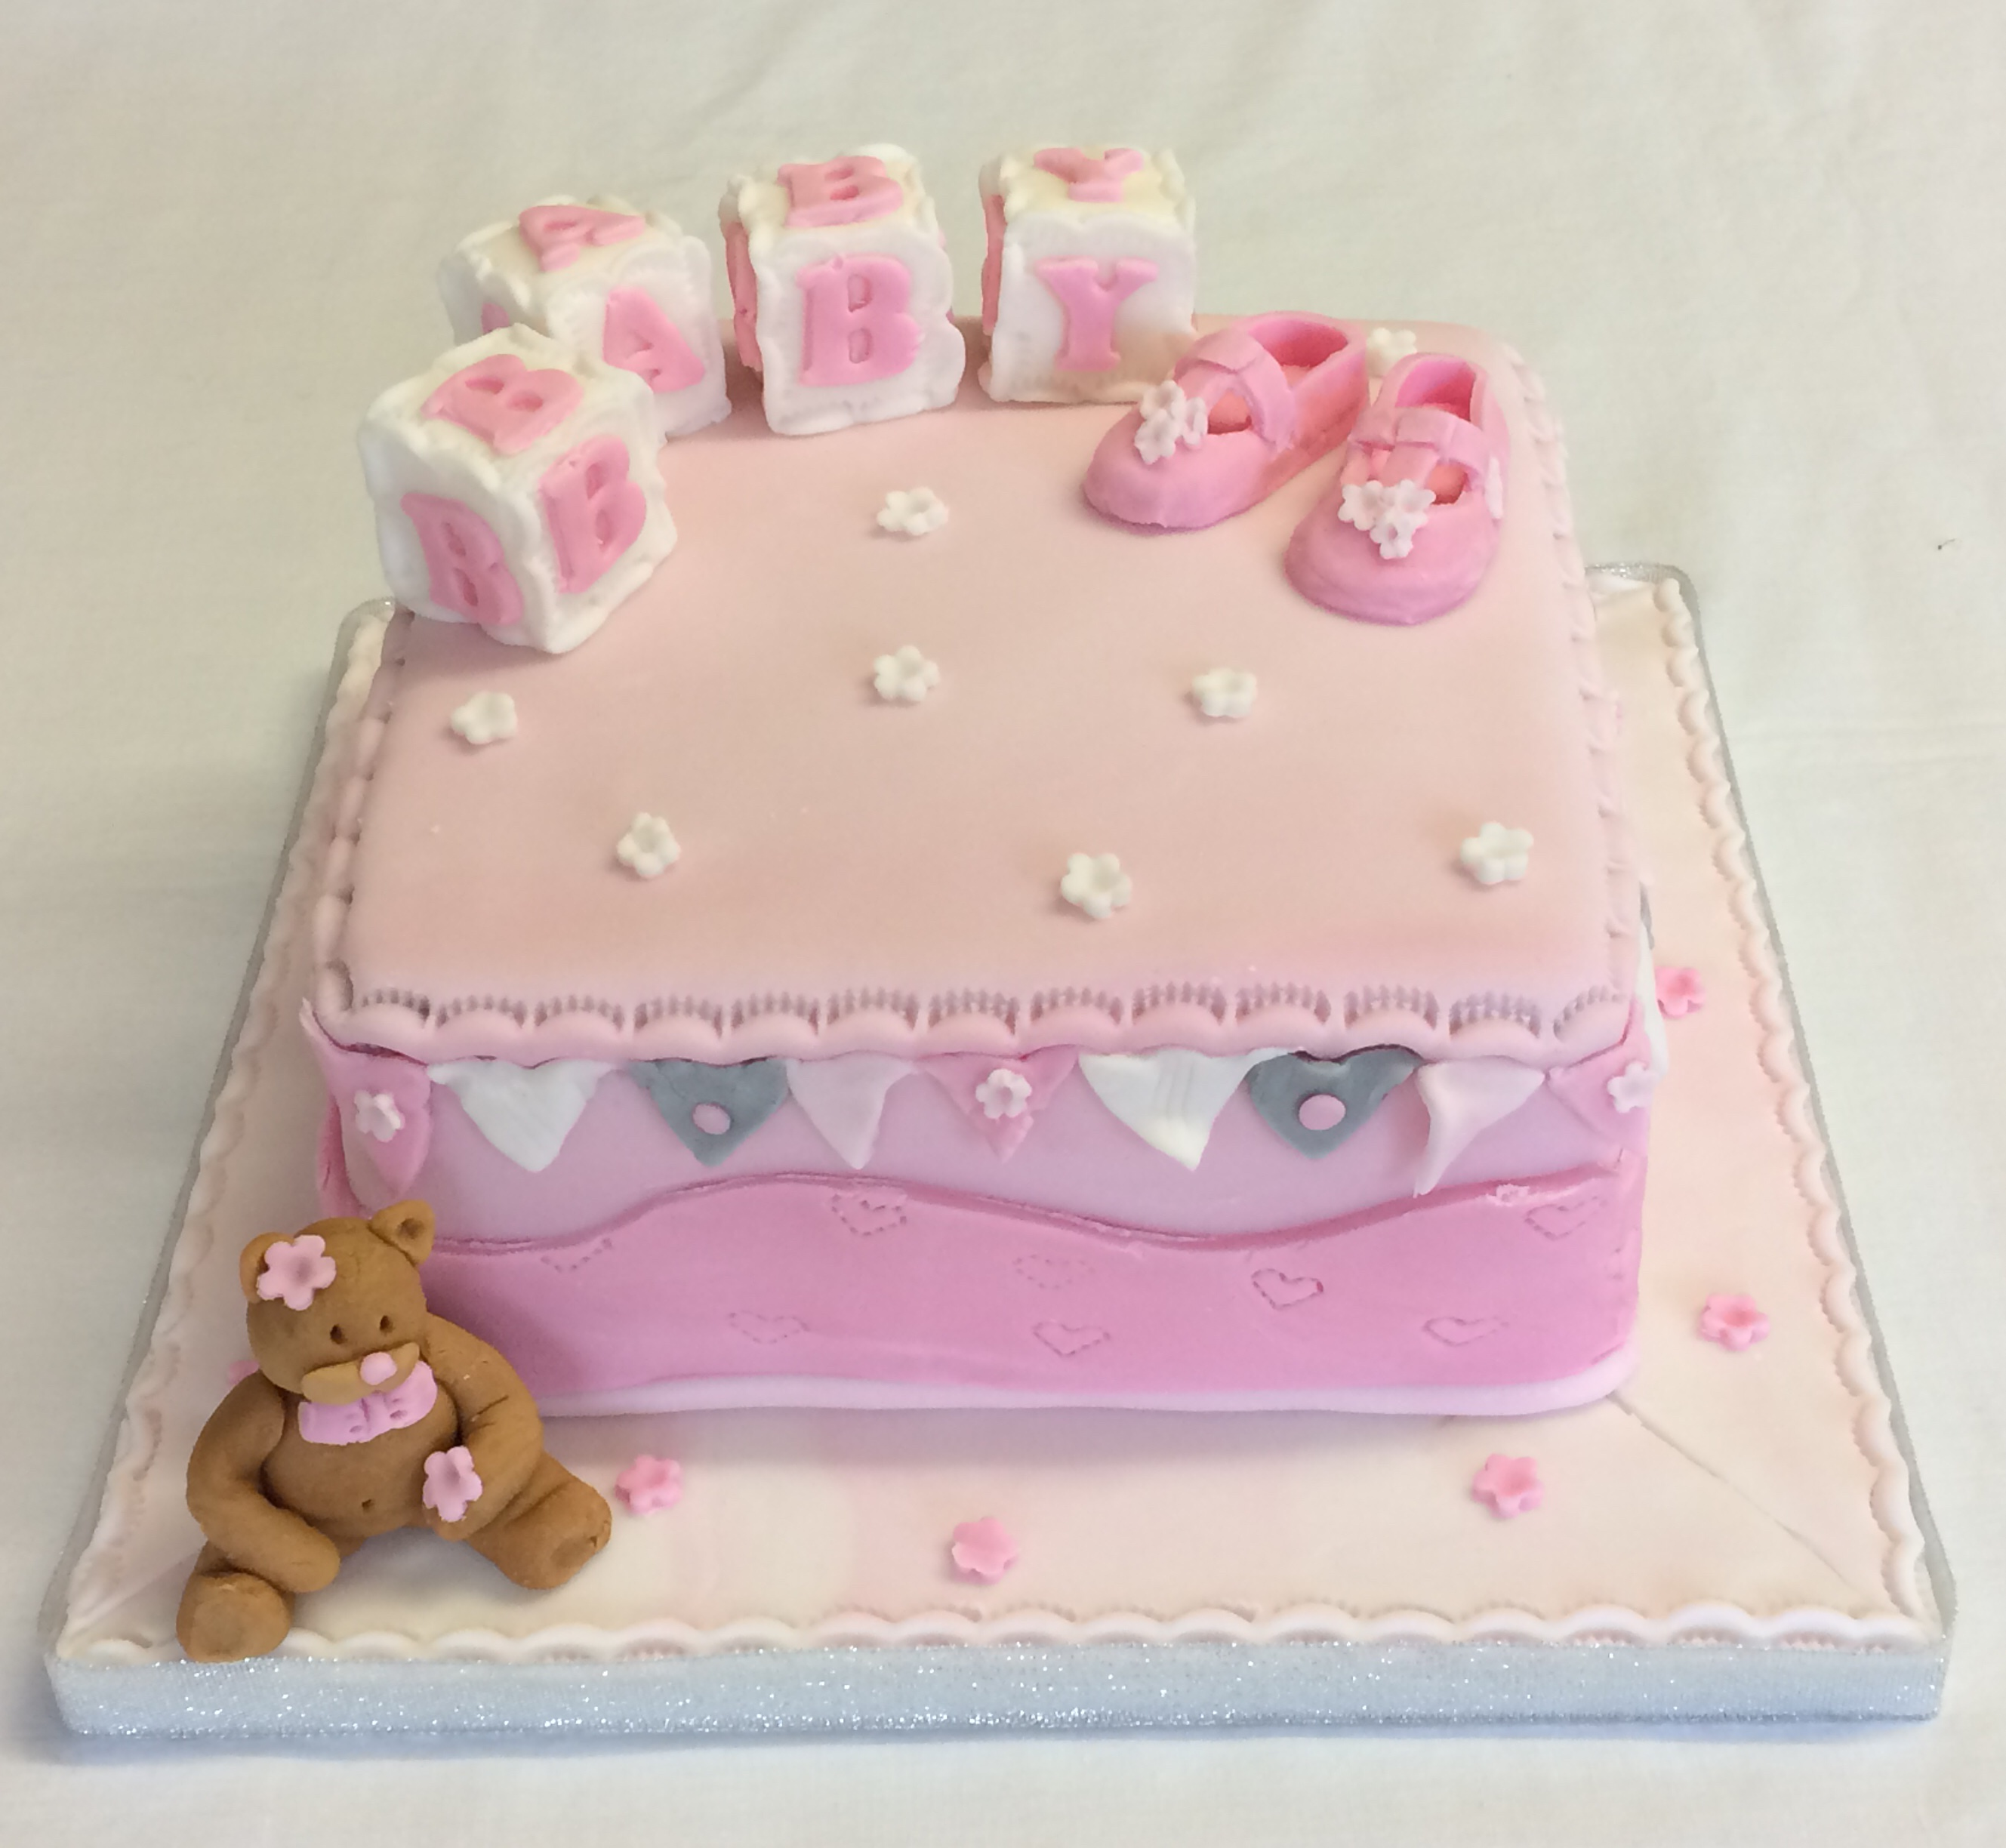 Baby Shower Cake With Bootees The Cake Box